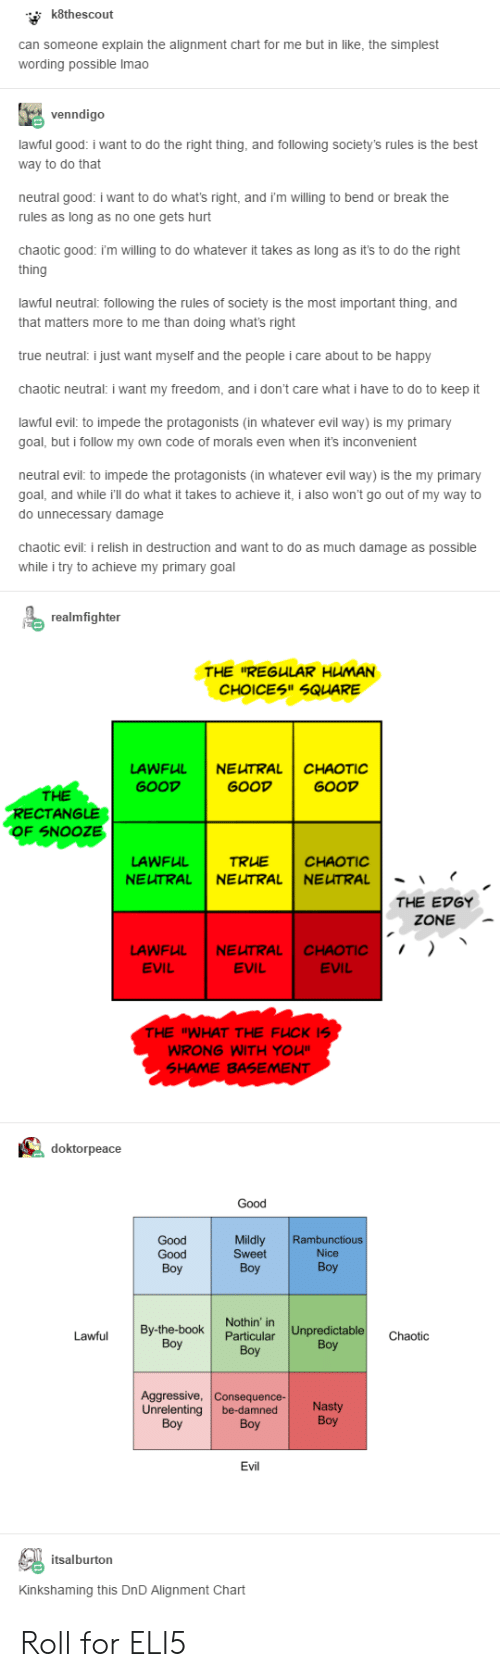 """Be Damned: k8thescout  can someone explain the alignment chart for me but in like, the simplest  wording possible Imao  Vvenndigo  lawful good: i want to do the right thing, and following society's rules is the best  way to do that  neutral good: i want to do what's right, and i'm willing to bend or break the  rules as long as no one gets hurt  chaotic good: i'm willing to do whatever it takes as long as it's to do the right  thing  lawful neutral: following the rules of society is the most important thing, and  that matters more to me than doing what's right  true neutral: i just want myself and the people i care about to be happy  chaotic neutral: i want my freedom, and i don't care what i have to do to keep it  lawful evil: to impede the protagonists (in whatever evil way) is my primary  goal, but i follow my own code of morals even when it's inconvenient  neutral evil: to impede the protagonists (in whatever evil way) is the my primary  goal, and while i'll do what it takes to achieve it, i also won't go out of my way to  do unnecessary damage  chaotic evil: i relish in destruction and want to do as much damage as possible  while i try to achieve my primary goal  realmfighter  THE """"REGULAR HUMAN  CHOICES"""" SQUARE  LAWFUL  NEUTRAL  CHAOTIC  GOOD  GOOD  GOOD  THE  RECTANGLE  OF SNOOZE  LAWFUL  TRUE  CHAOTIC  NEUTRAL  NEUTRAL  NEUTRAL  THE EDGY  ZONE  NEUTRAL  LAWFUL  EVIL  CHAOTIC  EVIL  EVIL  THE """"WHAT THE FUCK IS  WRONG WITH YOU""""  SHAME BASEMENT  doktorpeace  Good  Good  Good  Mildly  Sweet  Rambunctious  Nice  Boy  Вoy  Вoy  Nothin' in  Particular  Unpredictable  By-the-book  Boy  Lawful  Chaotic  Вoy  Boy  Aggressive, Consequence-  Unrelenting  Nasty  Boy  be-damned  Boy  Boy  Evil  itsalburton  Kinkshaming this DnD Alignment Chart Roll for ELI5"""